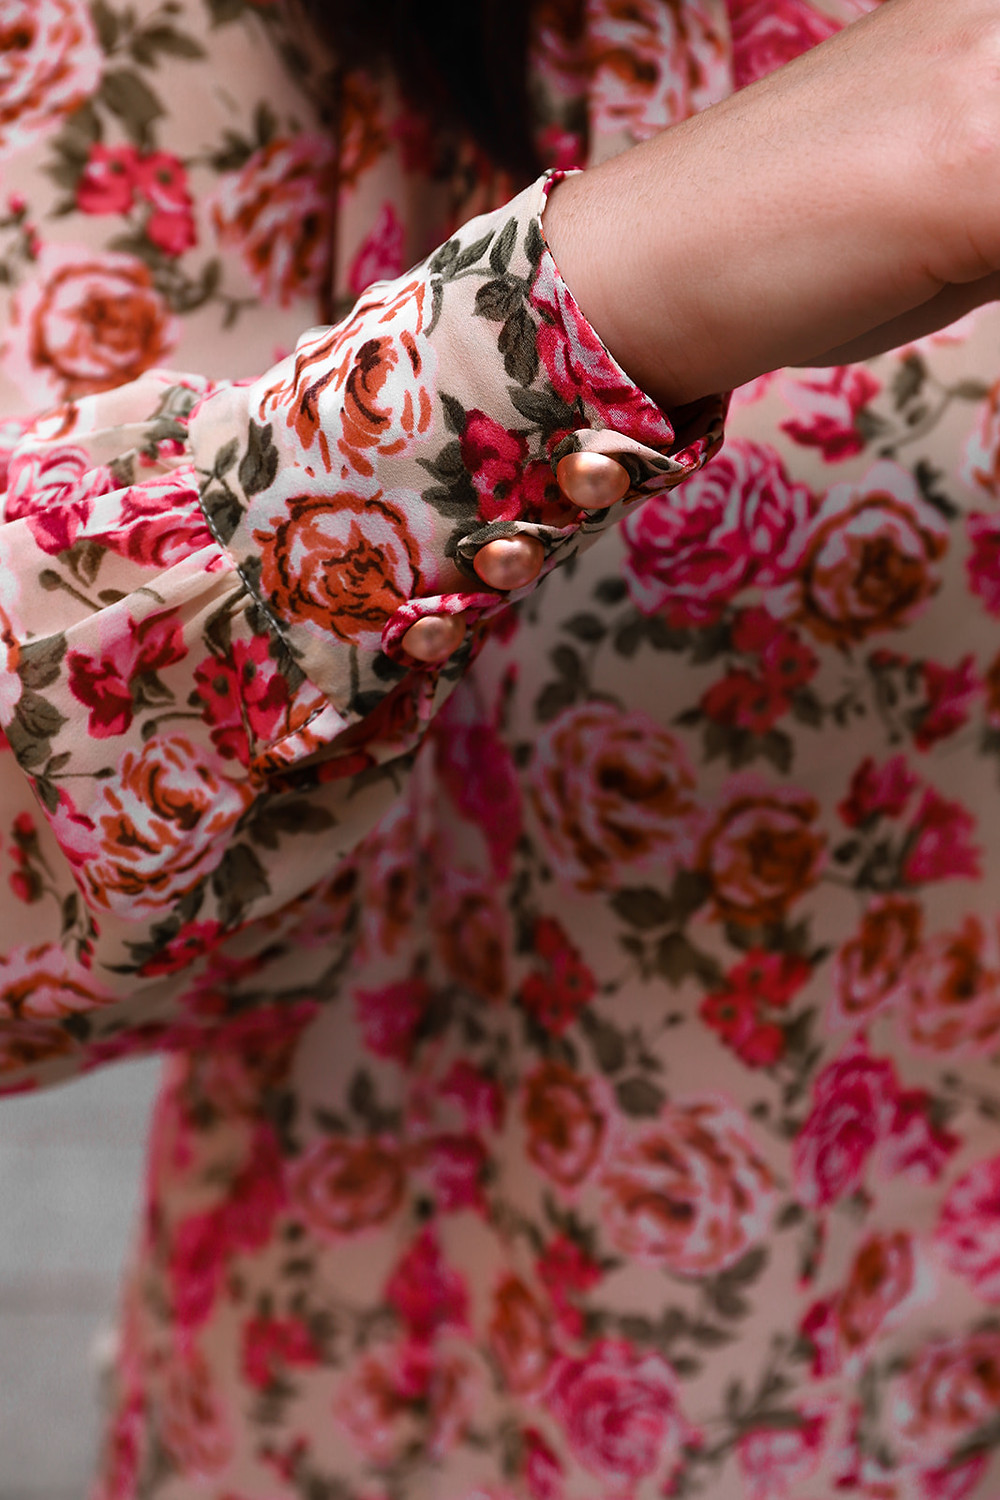 Marrakesh Rose blouse cuff detail. Pearl buttons and full sleeve.